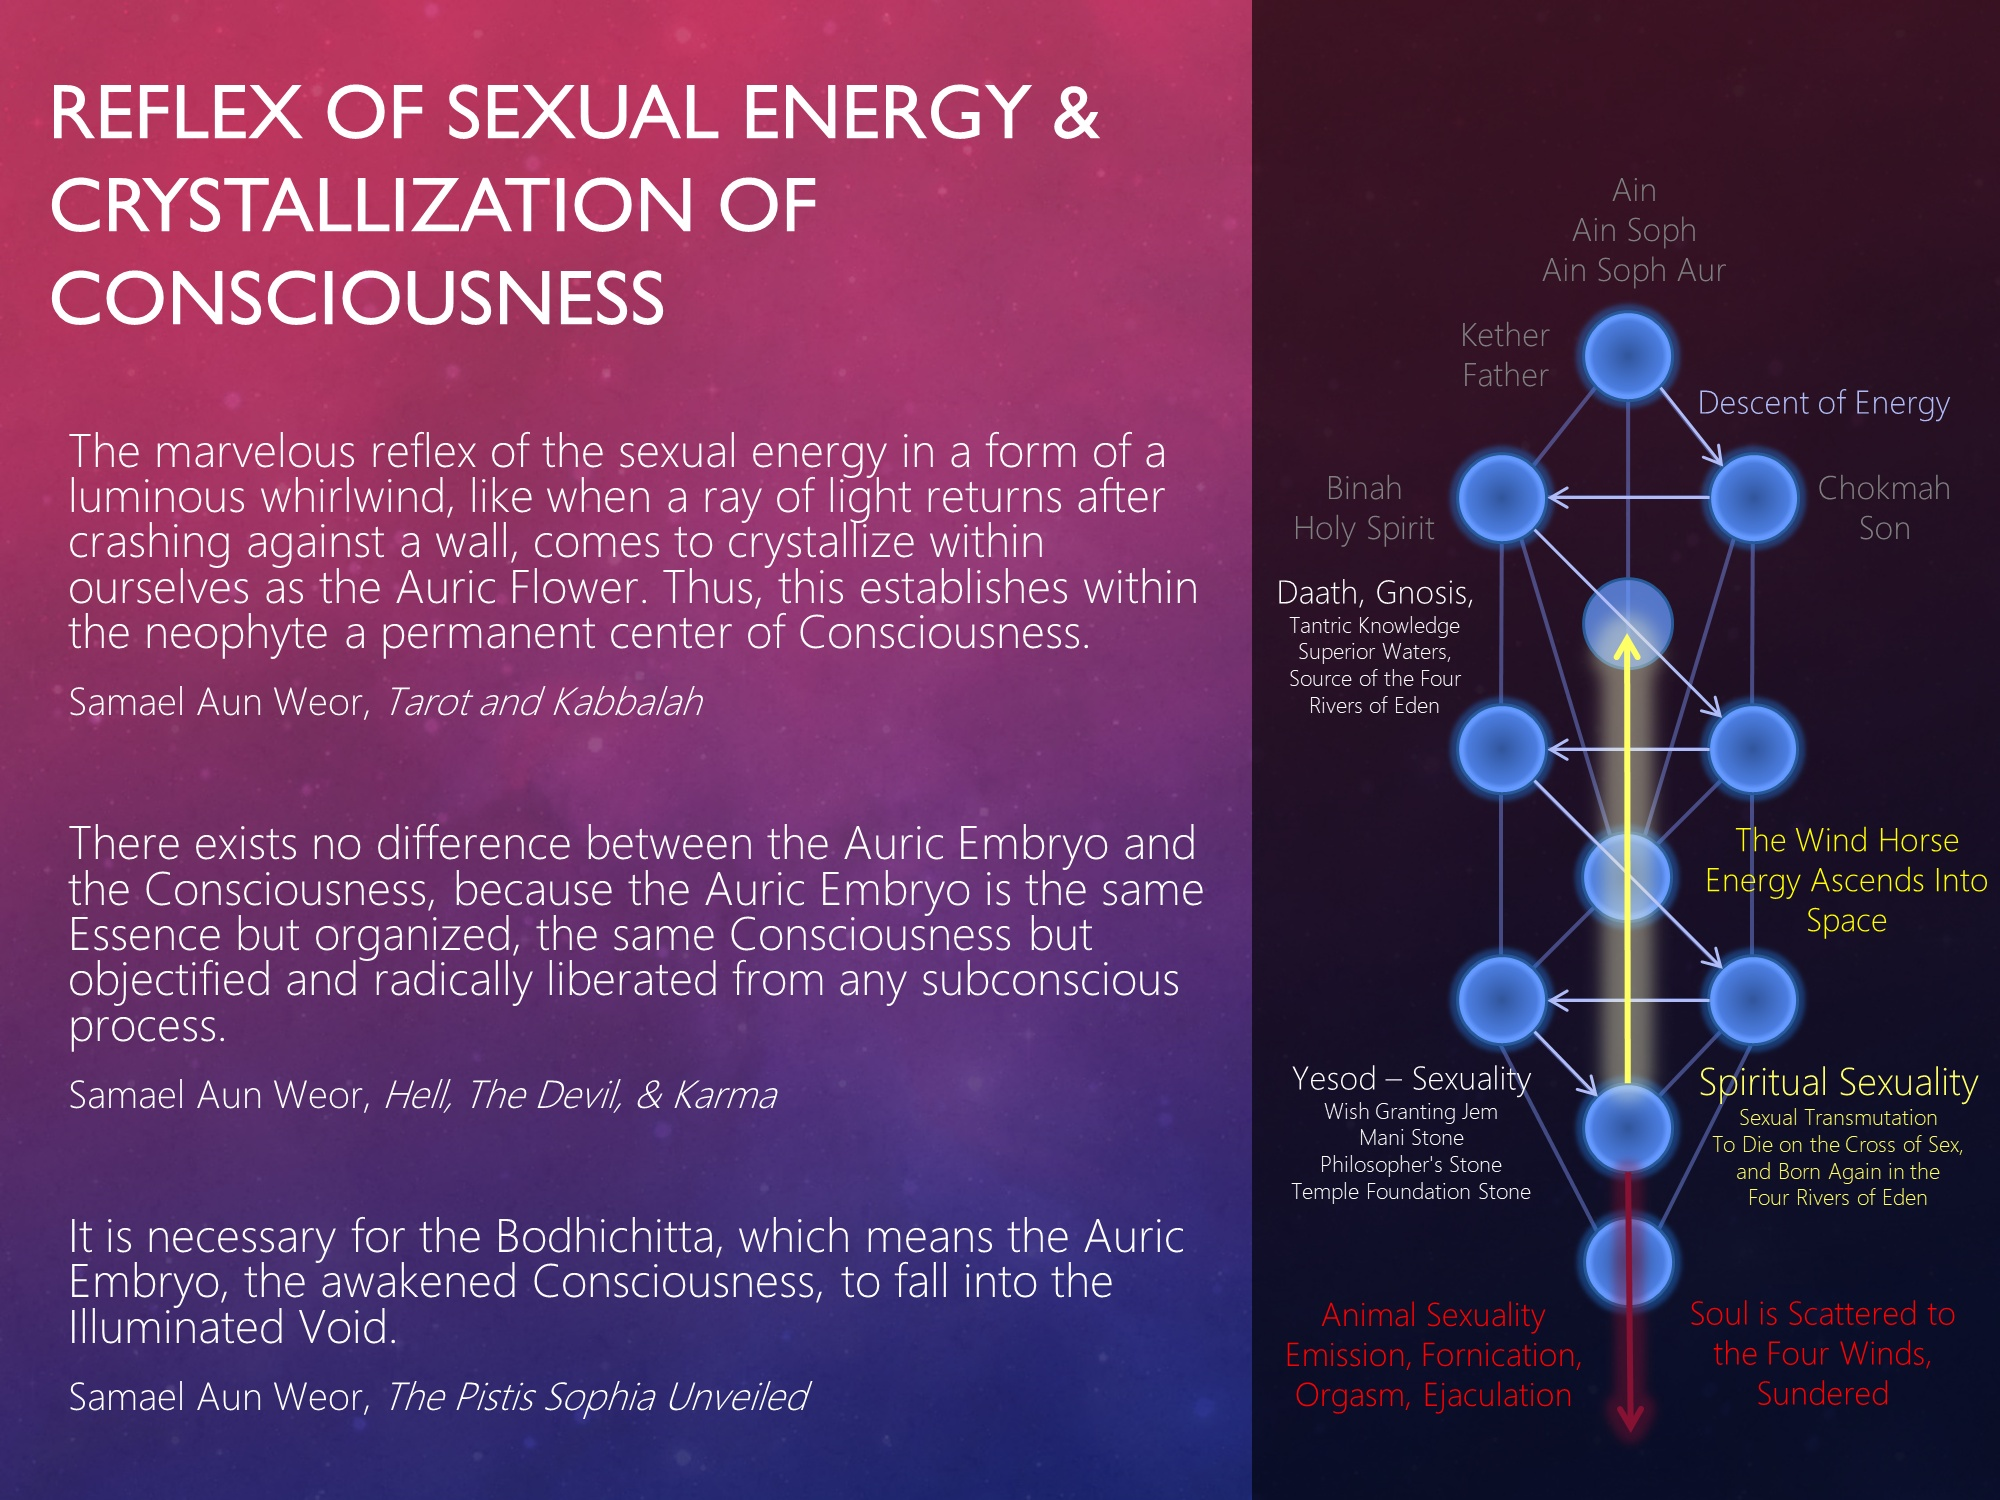 Reflex of Sexual Energy & Crystallization of Consciousness